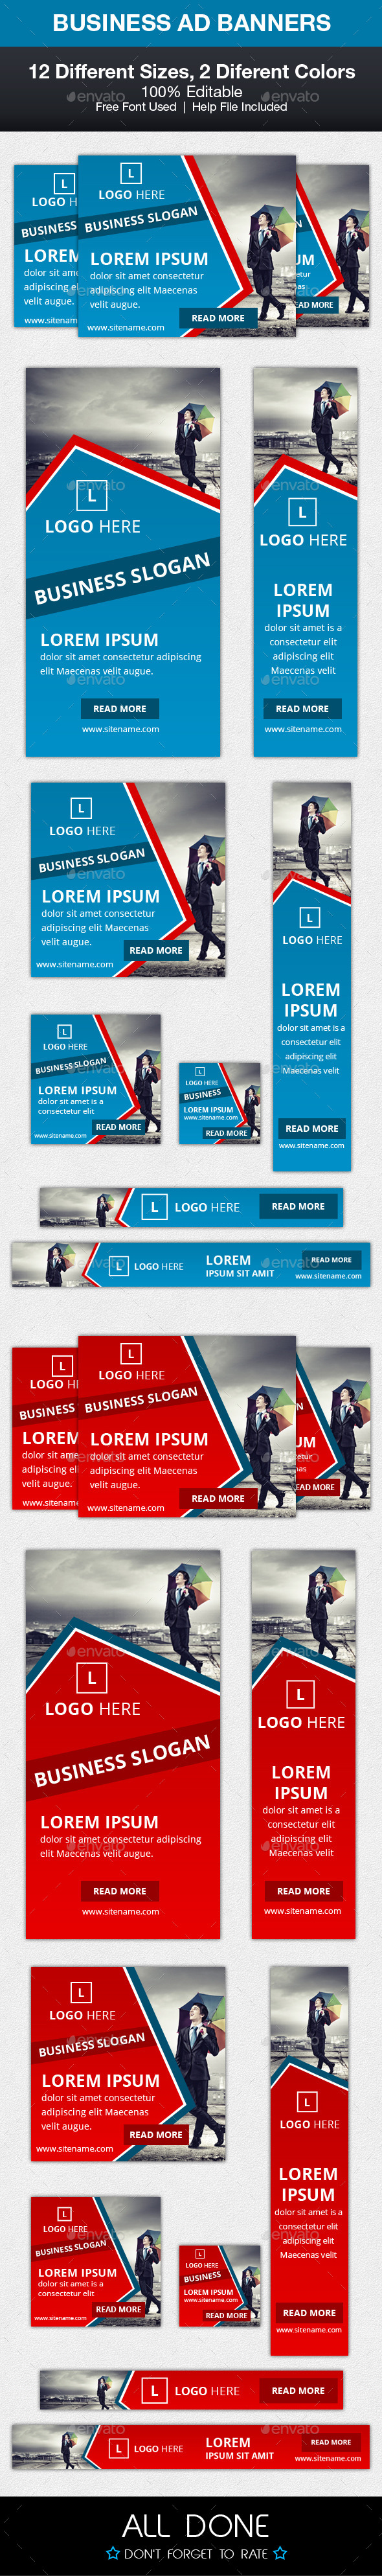 GraphicRiver Business Ad Banners 10106475